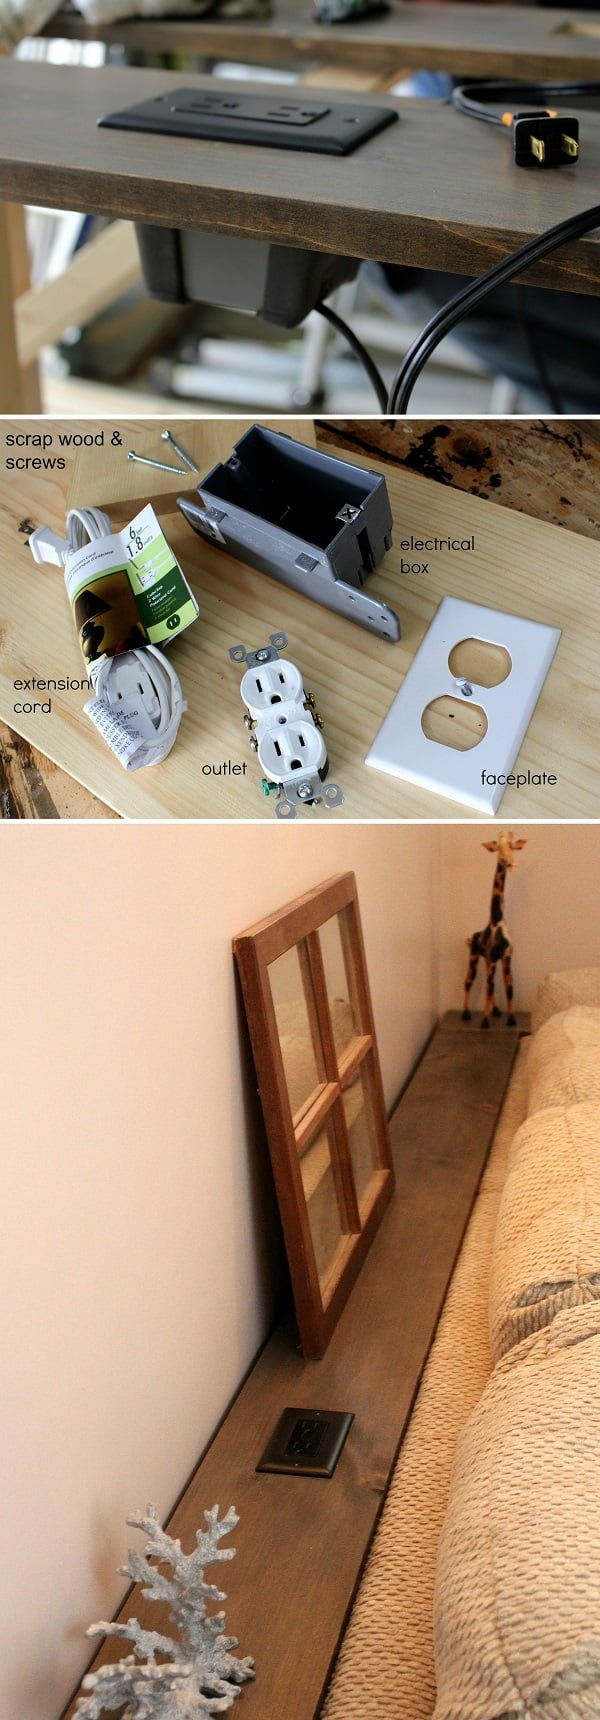 15 Easy and Brilliant DIY Home Decor Crafts on a Budget - Check out the tutorial on how to make a #DIY built-in power outlet #homedecor #woodworking